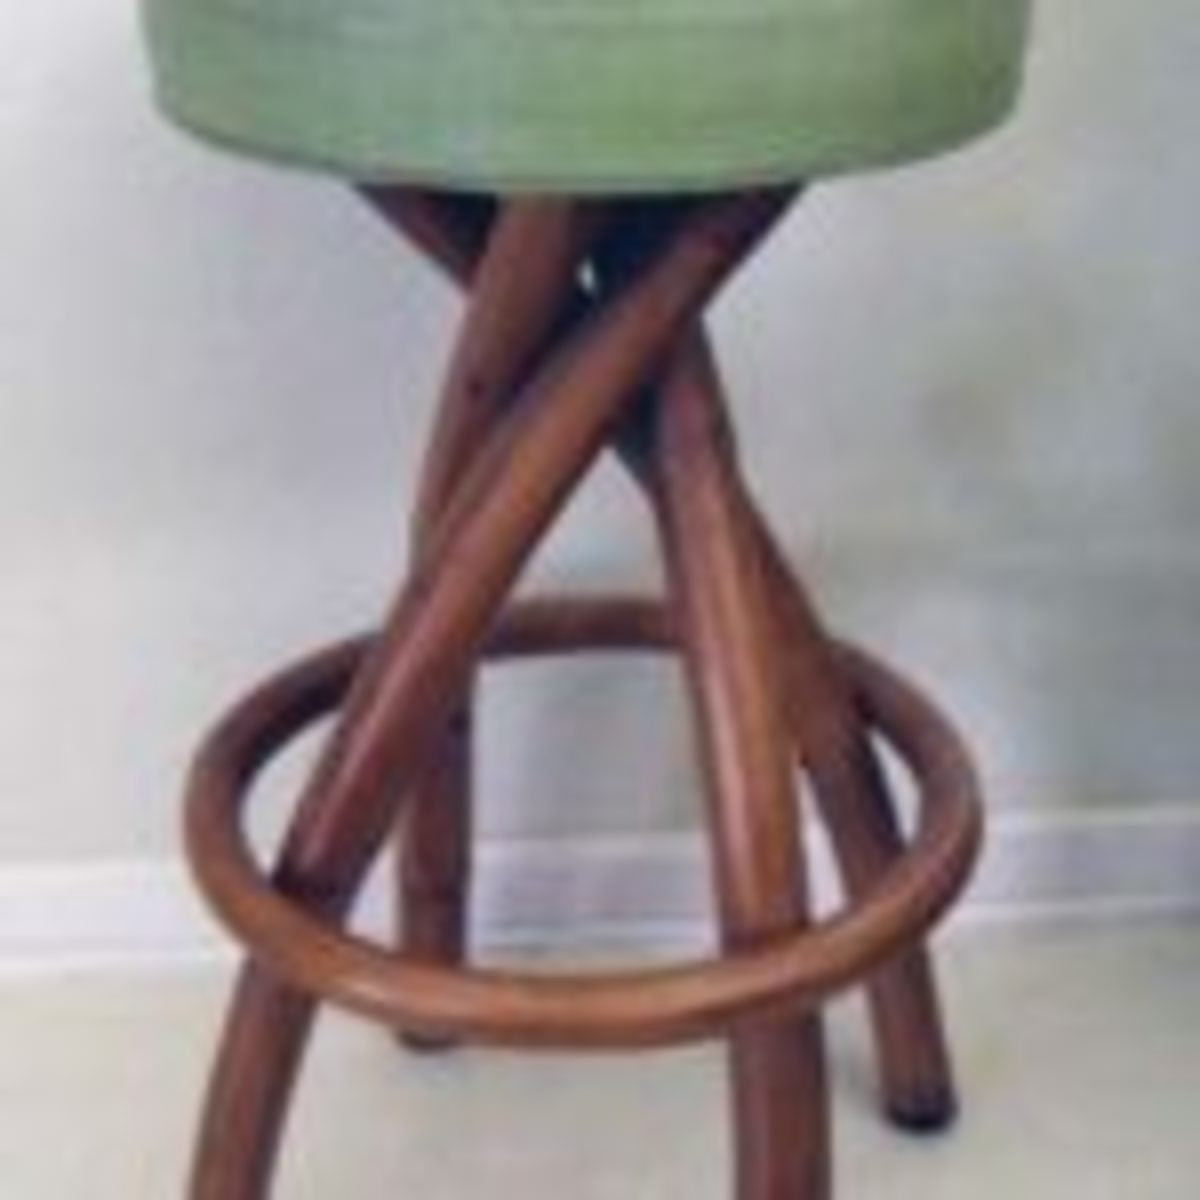 Bradston rattan bar stool, mid 20th century, 29 inches tall, seat diameter 15 inches, $125.Courtesy of Black Tulip Antiques on Ruby Lane; https://www.rubylane.com/shop/blacktulip